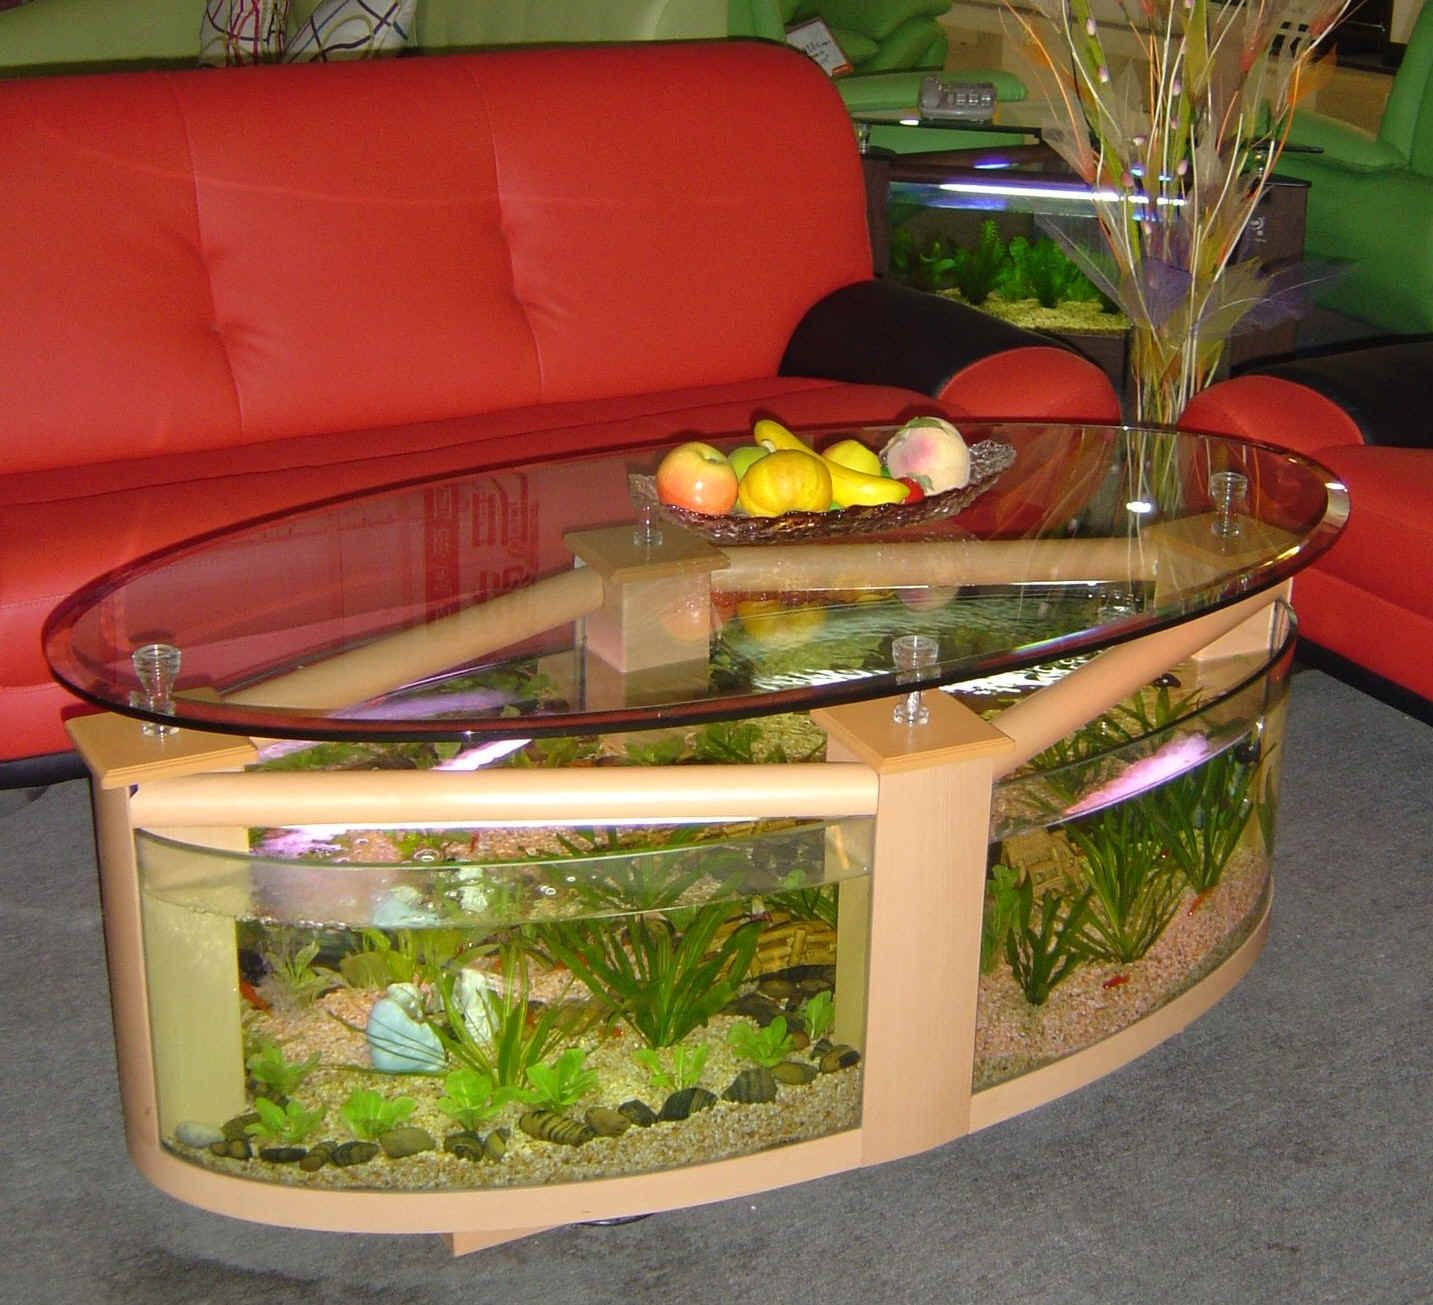 Fish tank living room table - We Manufacture Aquarium Coffee Tables That Is Fish Ready The Whole Combo Includes Filtration Lighting Pumps And Heater It S Even Equipped With Rollers